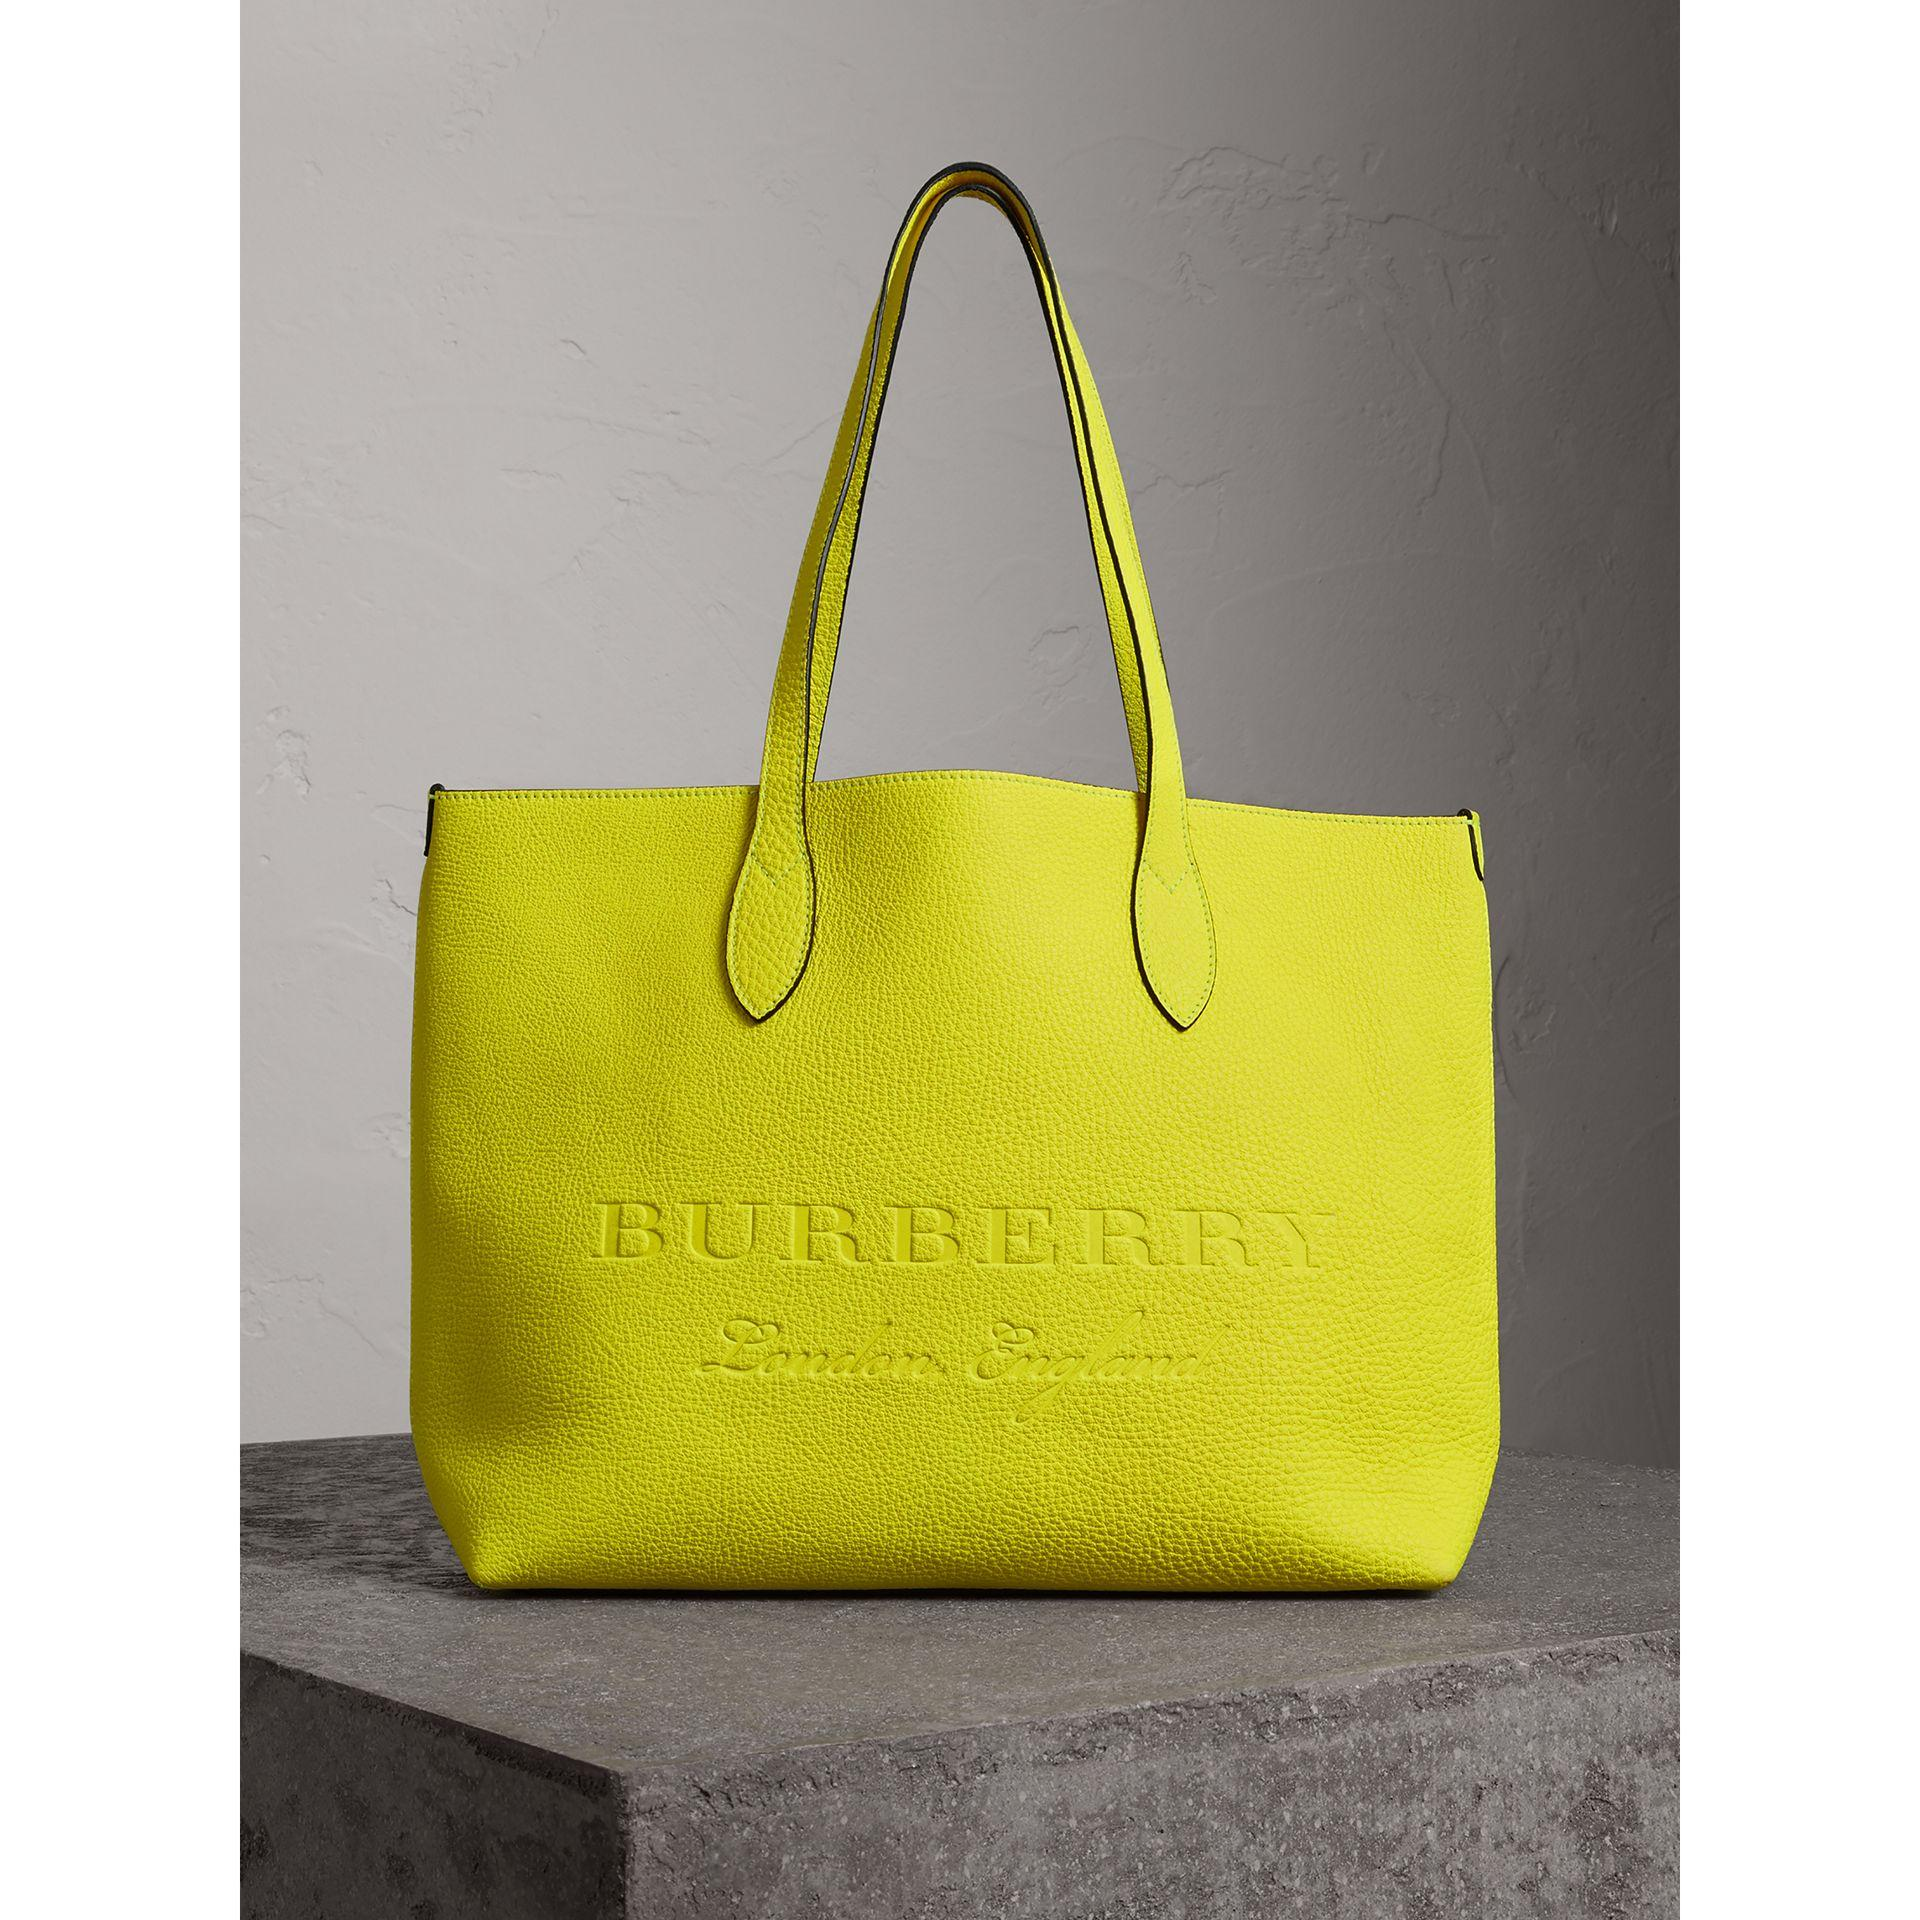 7ac742c8bf6a Burberry Large Remington Logo Leather Tote - Yellow